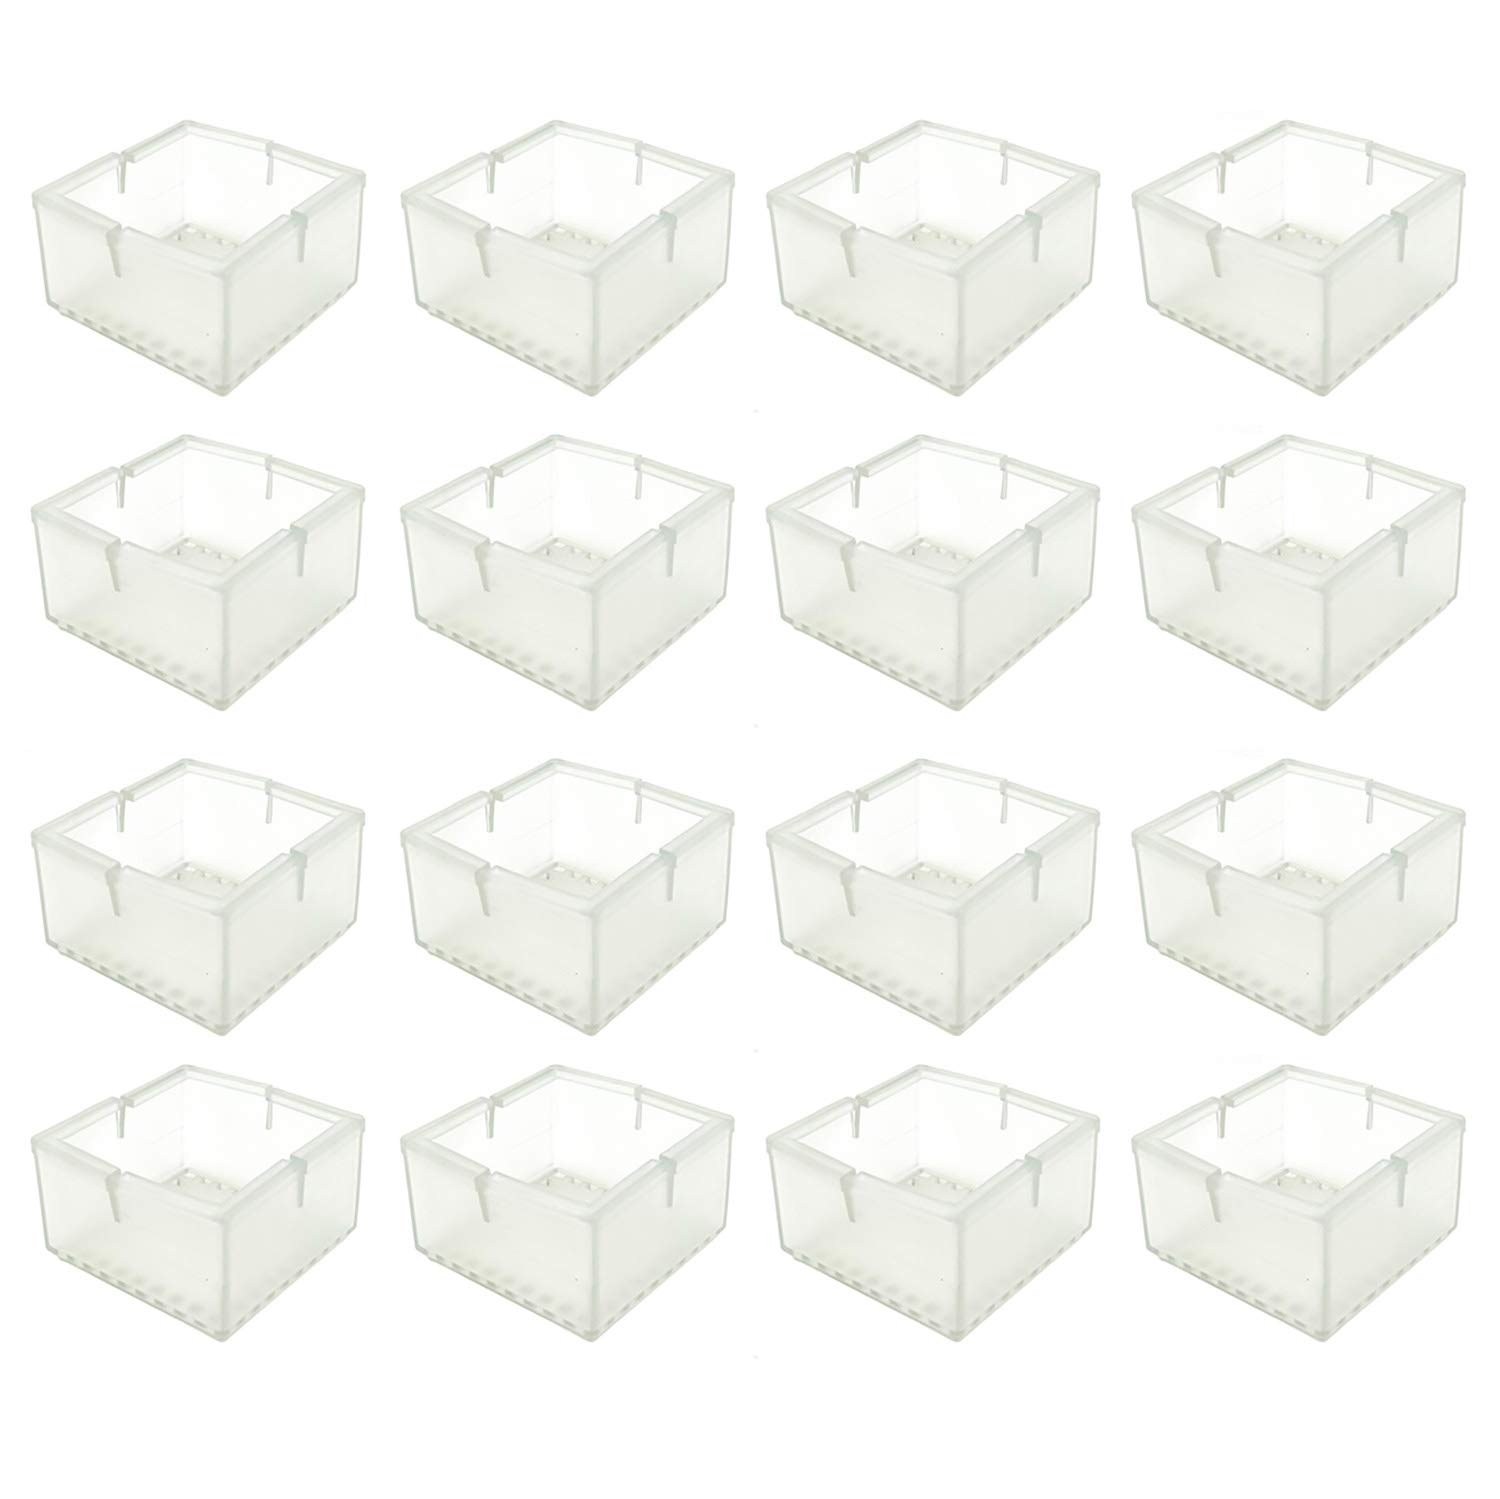 BTMB 16 Pcs Square Chair Leg Floor Protectors Silicone Furniture Table Feet Covers Transparent Furniture Leg Tips (Fit 1.92'' to 2.16'')